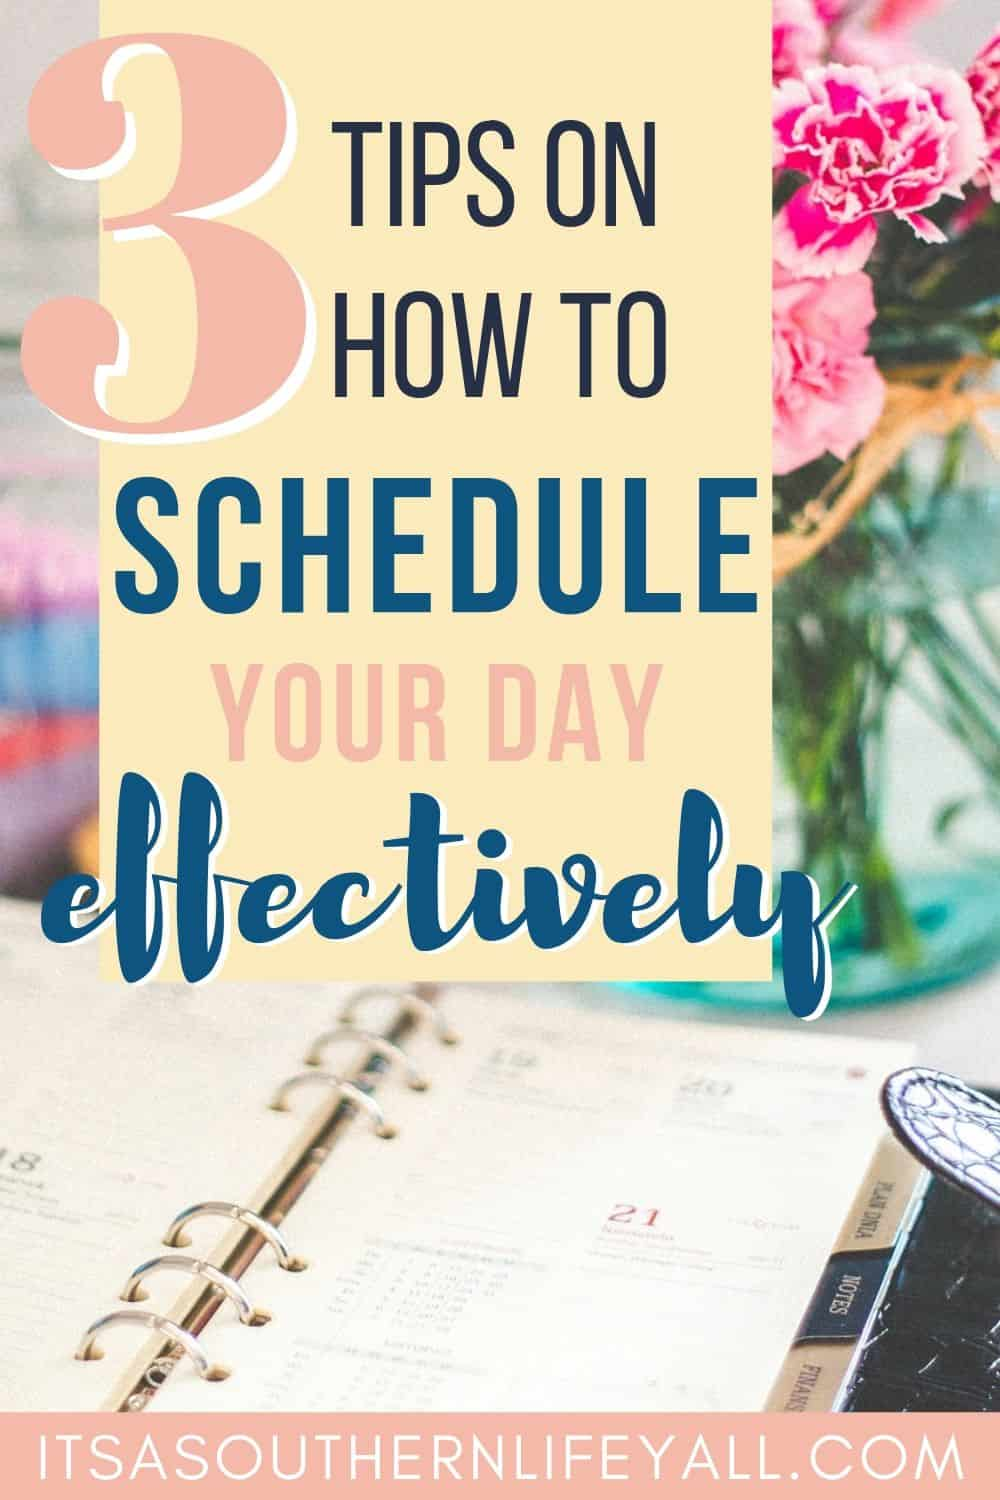 Planner on a desk with 3 tips on how to schedule your day effectively text overlay.